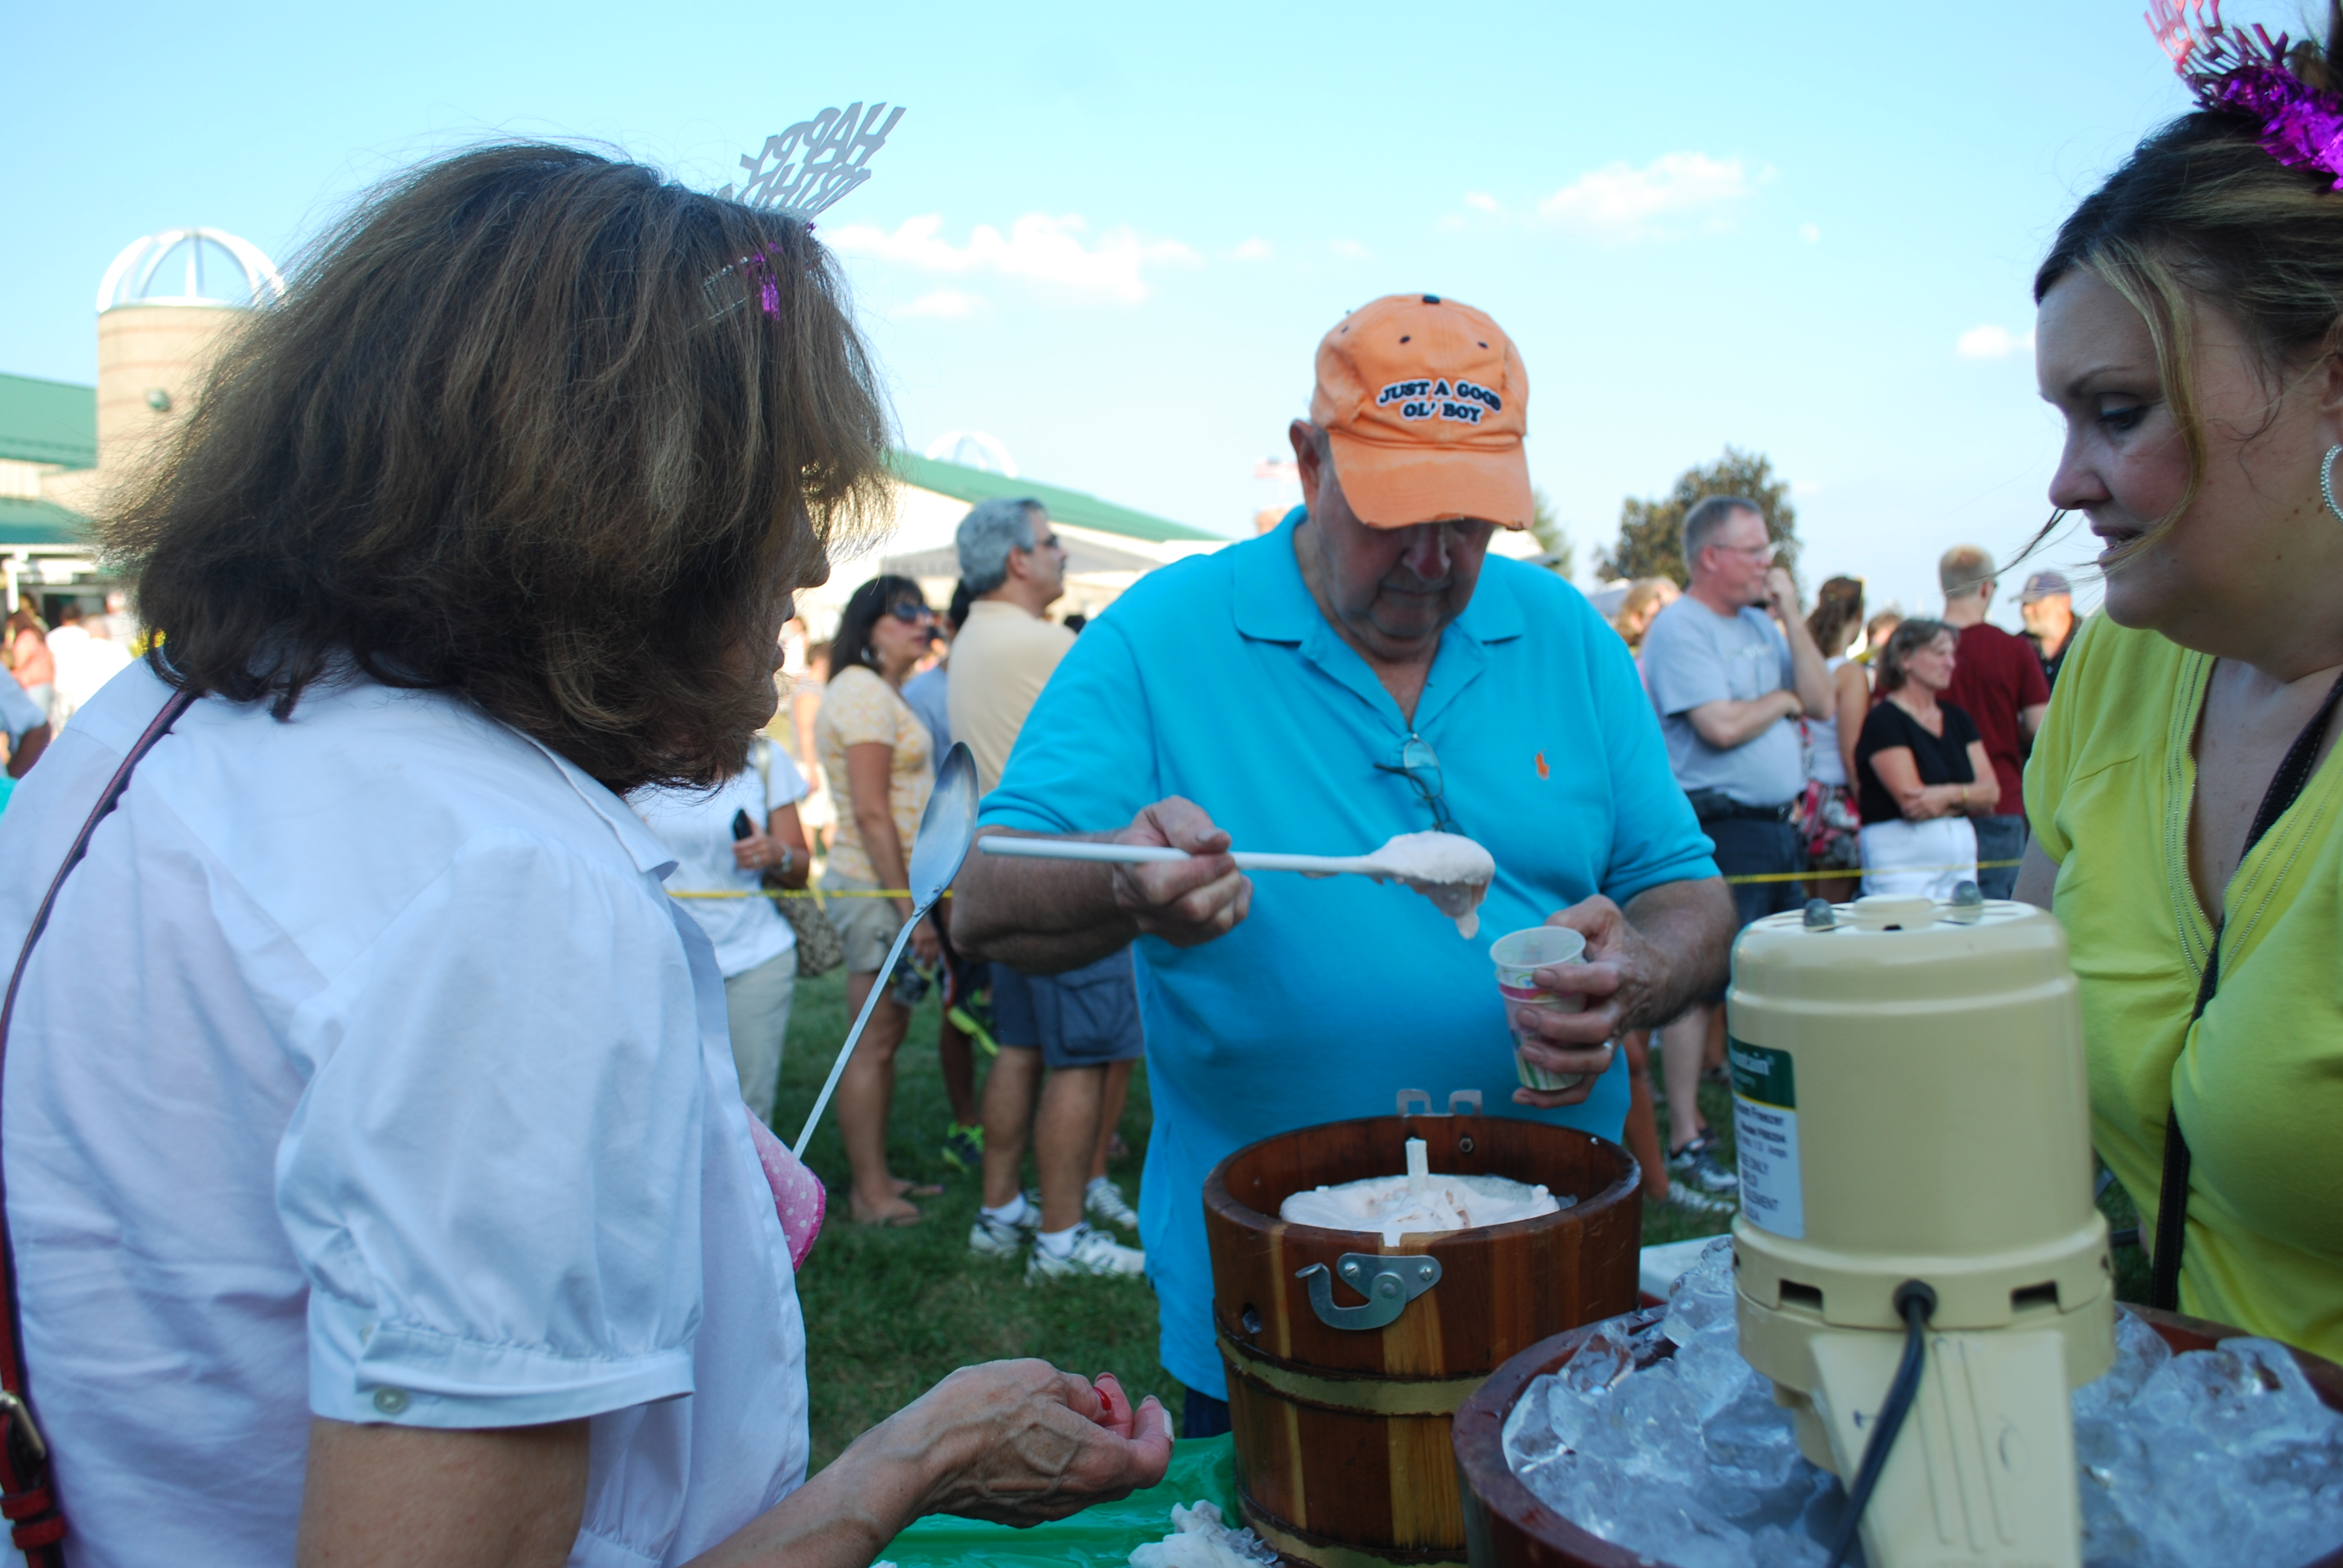 Dotty and Chuck McMillian competed in their 25th Homemade Ice Cream Contest at the Hamilton County 4-H Fair last year. (File photo)